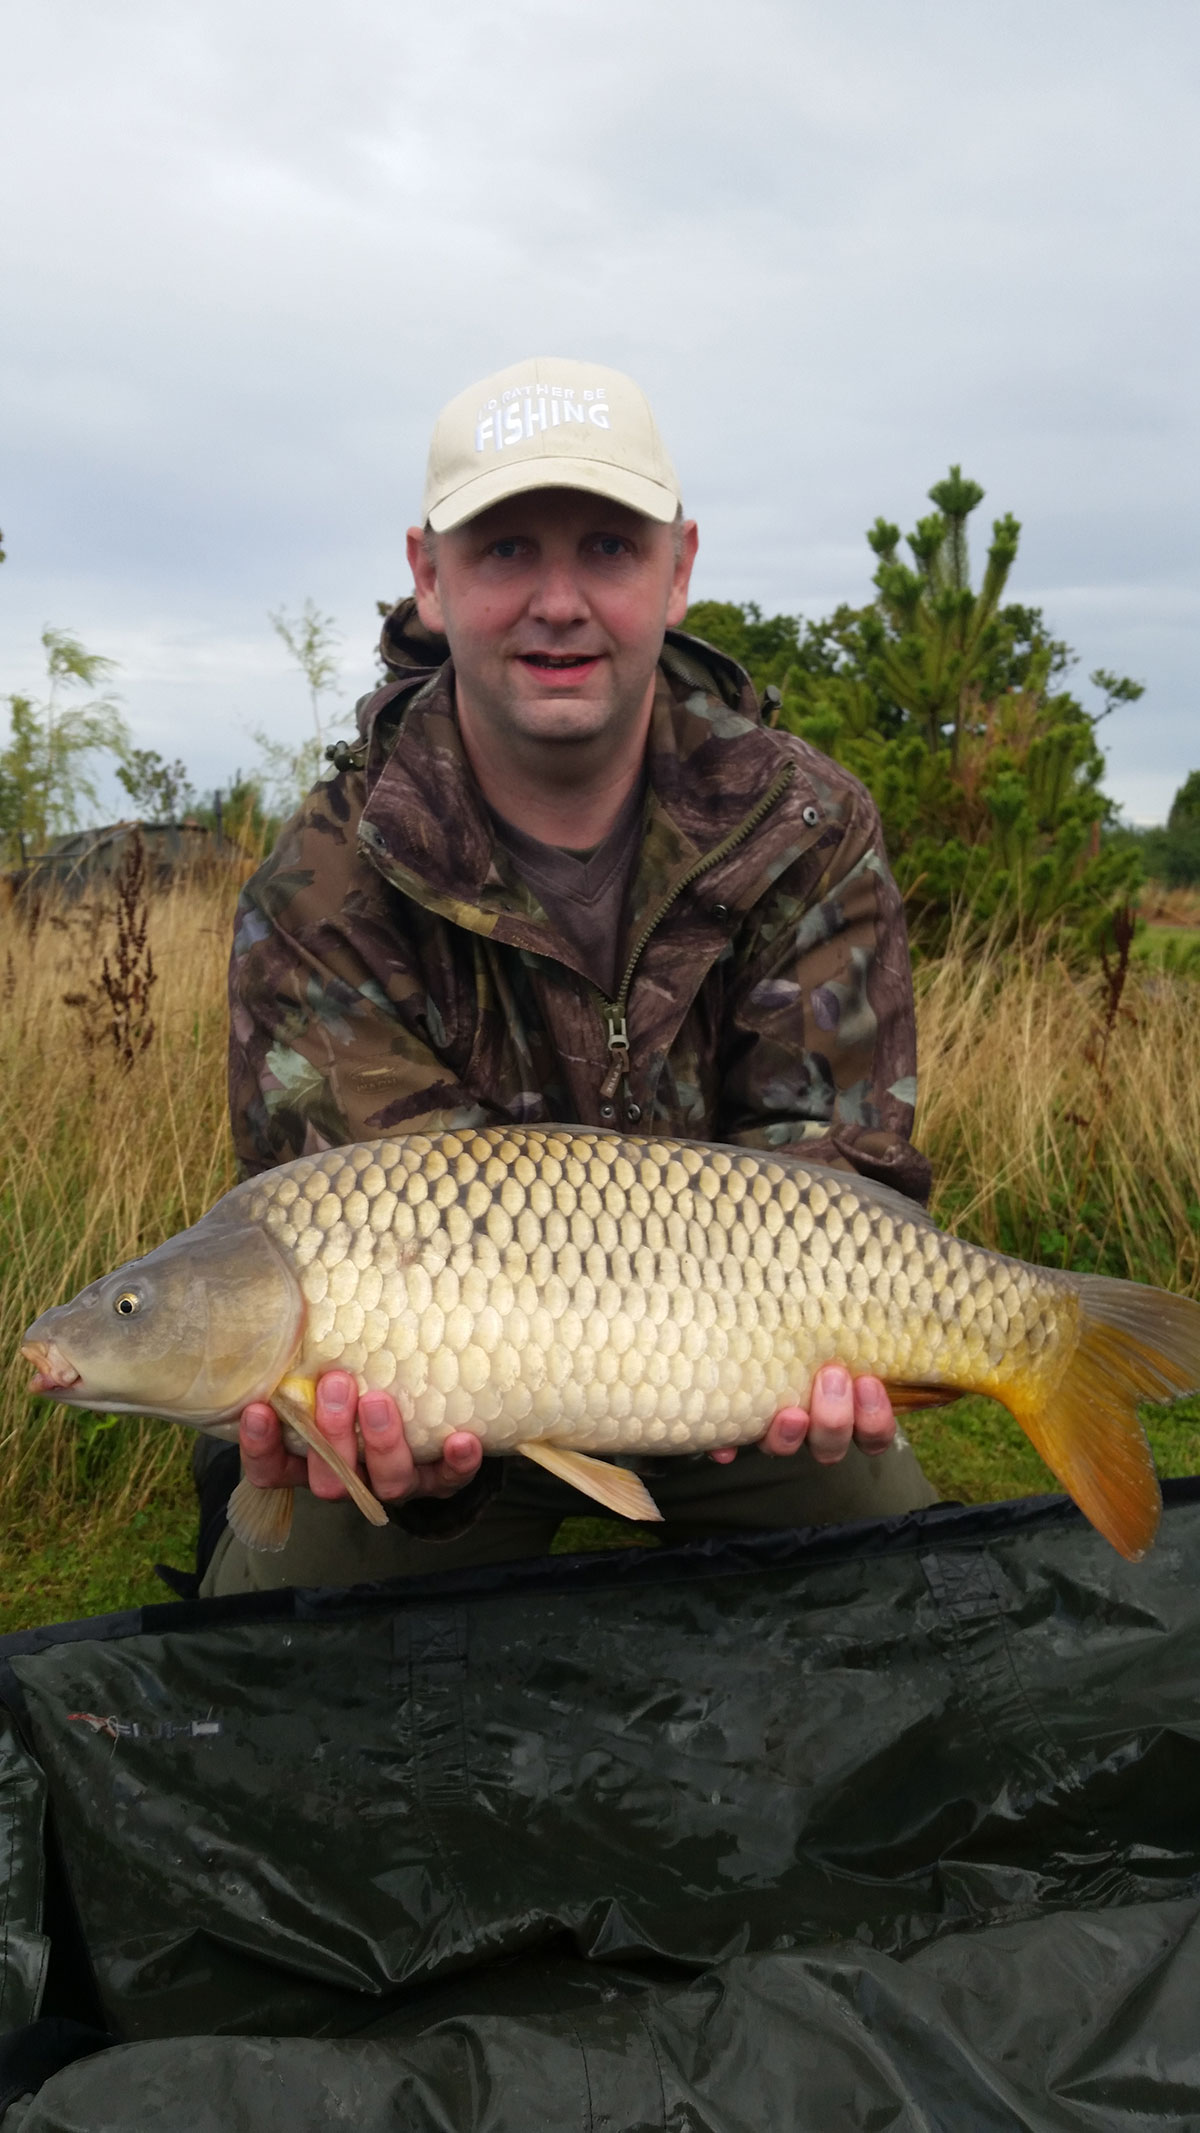 14lb-00 caught on Yellow Nut-Mino Wafter